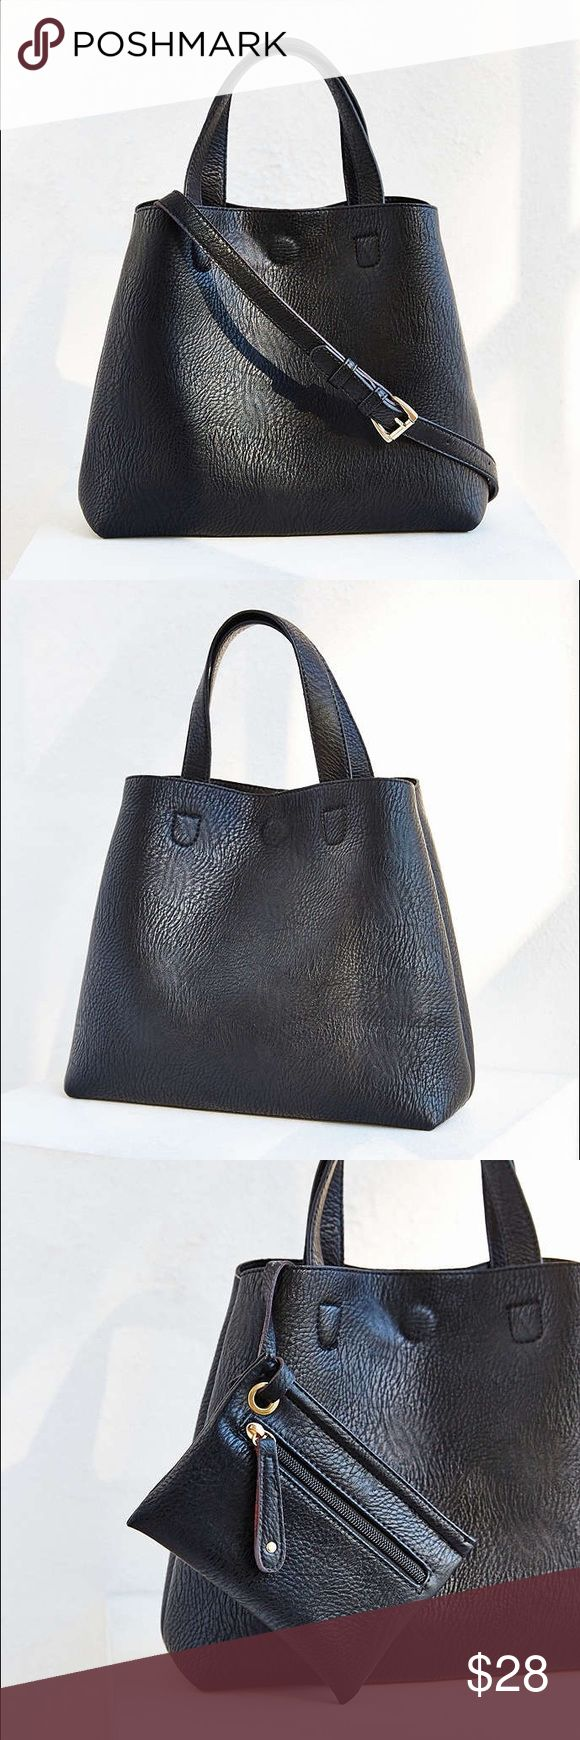 Urban Outfitters Tote Bag Currently still being sold for full price/ like new. Urban Outfitters Bags Totes